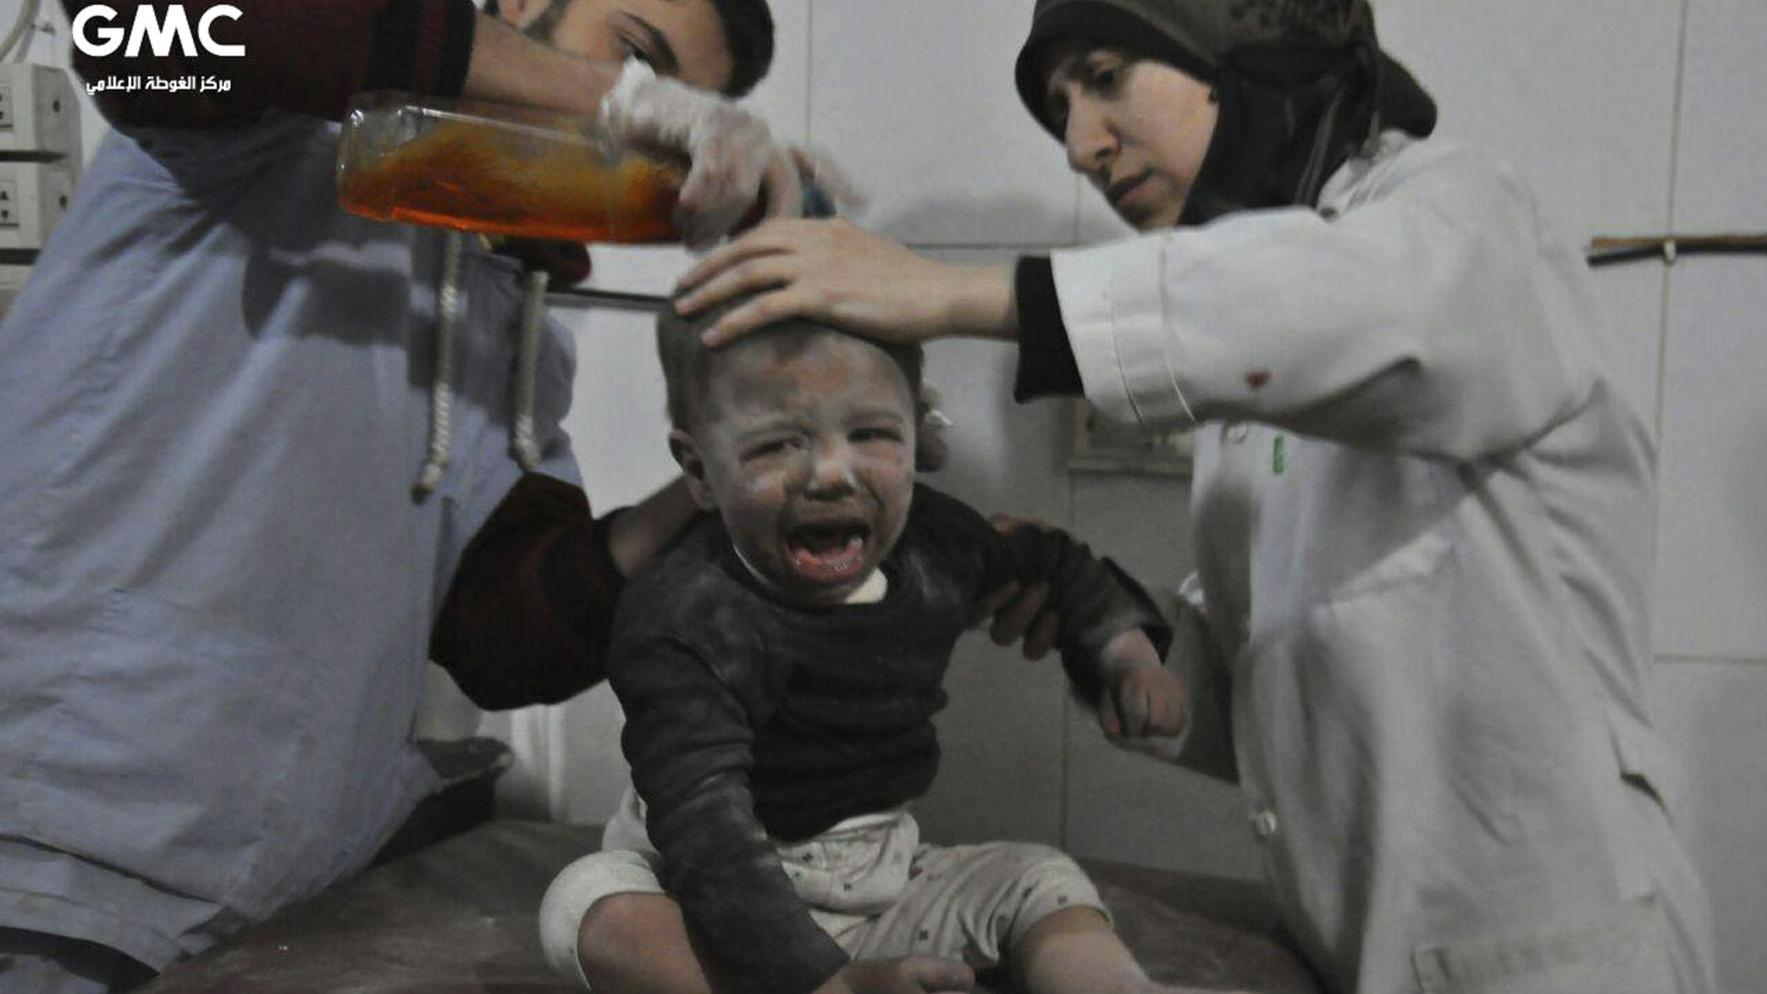 Graphic photos: Hospitals targeted, overwhelmed in Syrian suburbs bombing blitz